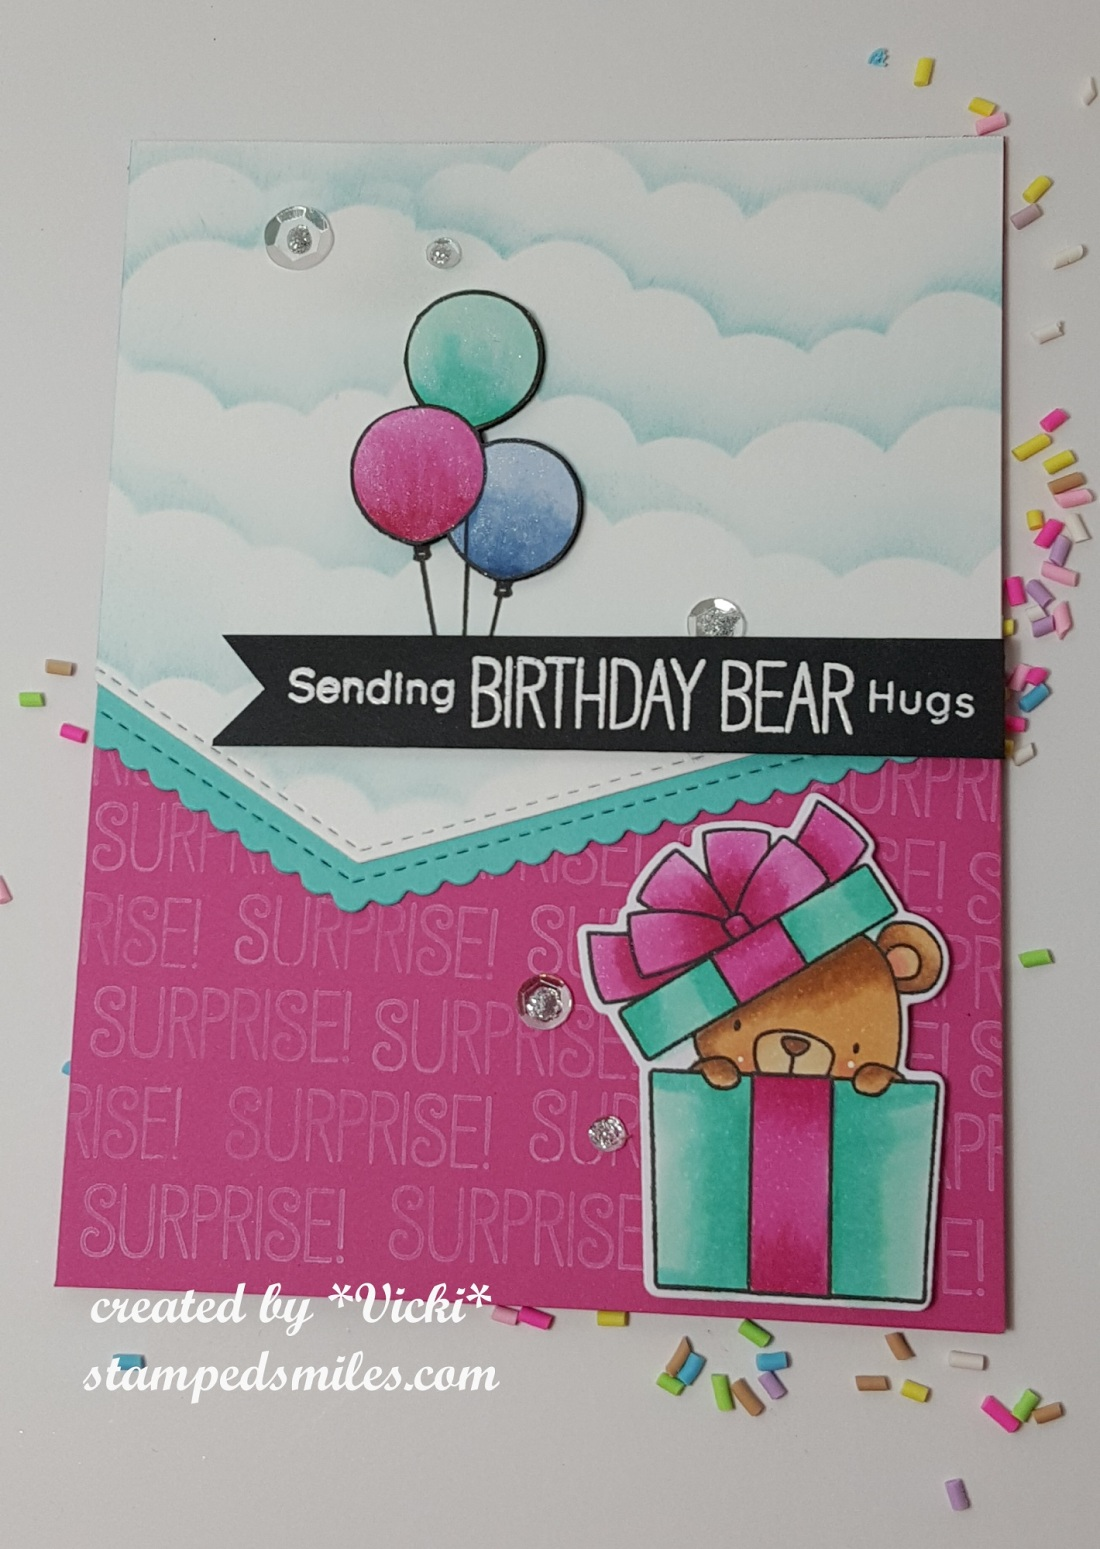 Vicki-MFT-birthdaybear